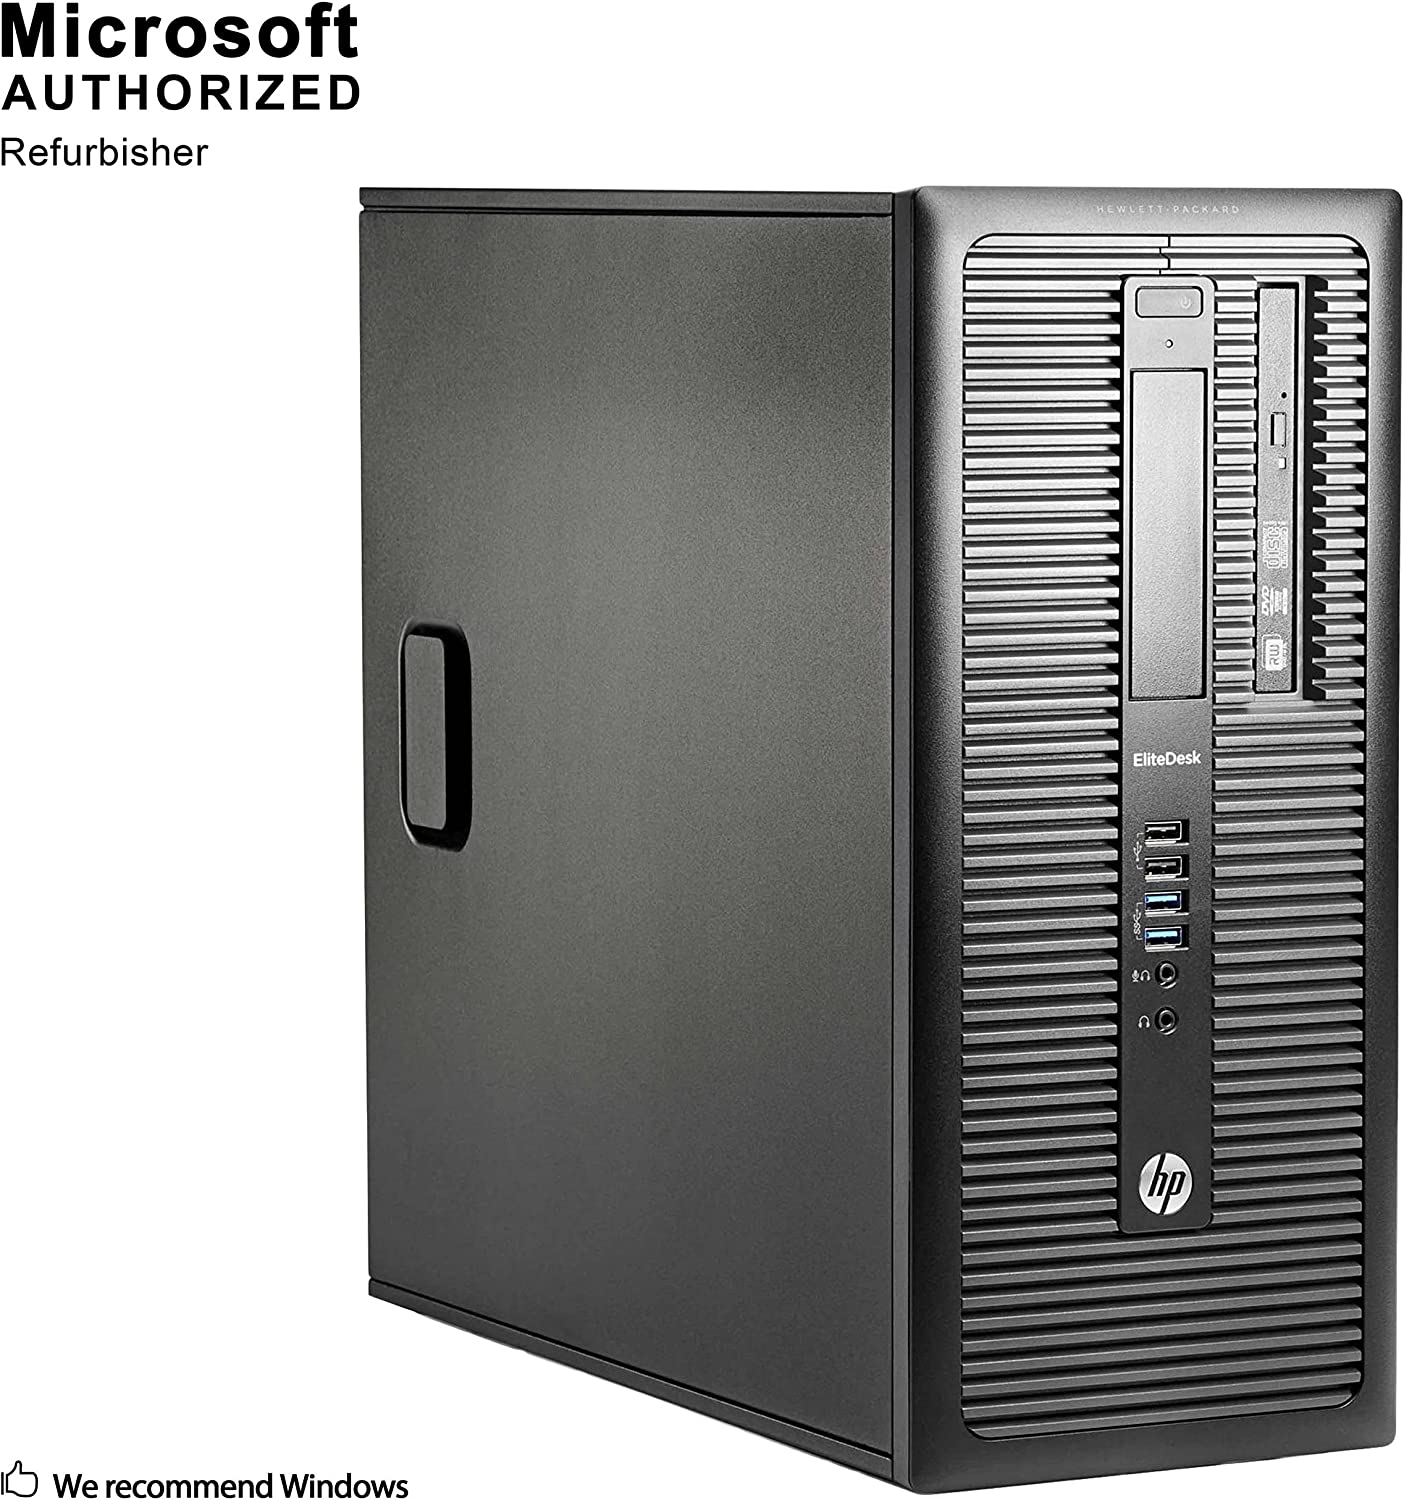 HP EliteDesk 800 G1 Tower Desktop PC, Intel Quad Core i5-4590 up to 3.7GHz, 8G DDR3, 512G SSD, DVD, WiFi, BT 4.0, Windows 10 64 Bit-Multi-Language Supports English/Spanish/French(Renewed)